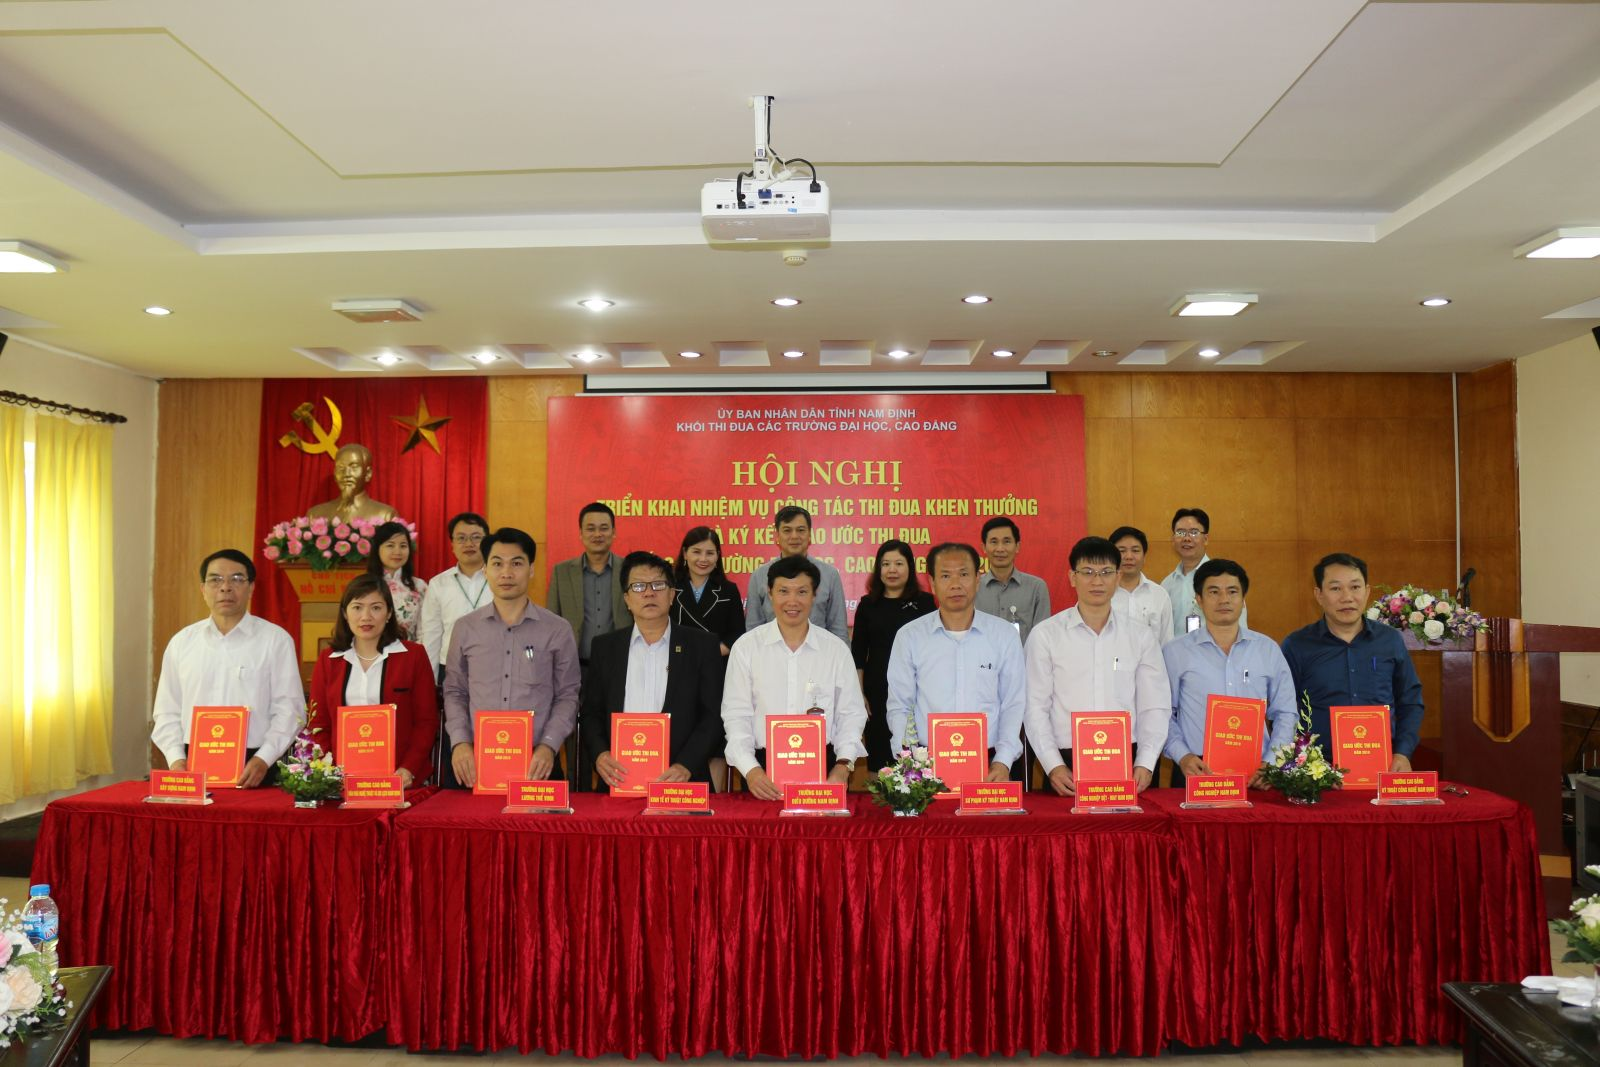 Conference on implementing tasks and signing the emulation contract in 2019 - The emulation for universities and colleges in Nam Dinh Province